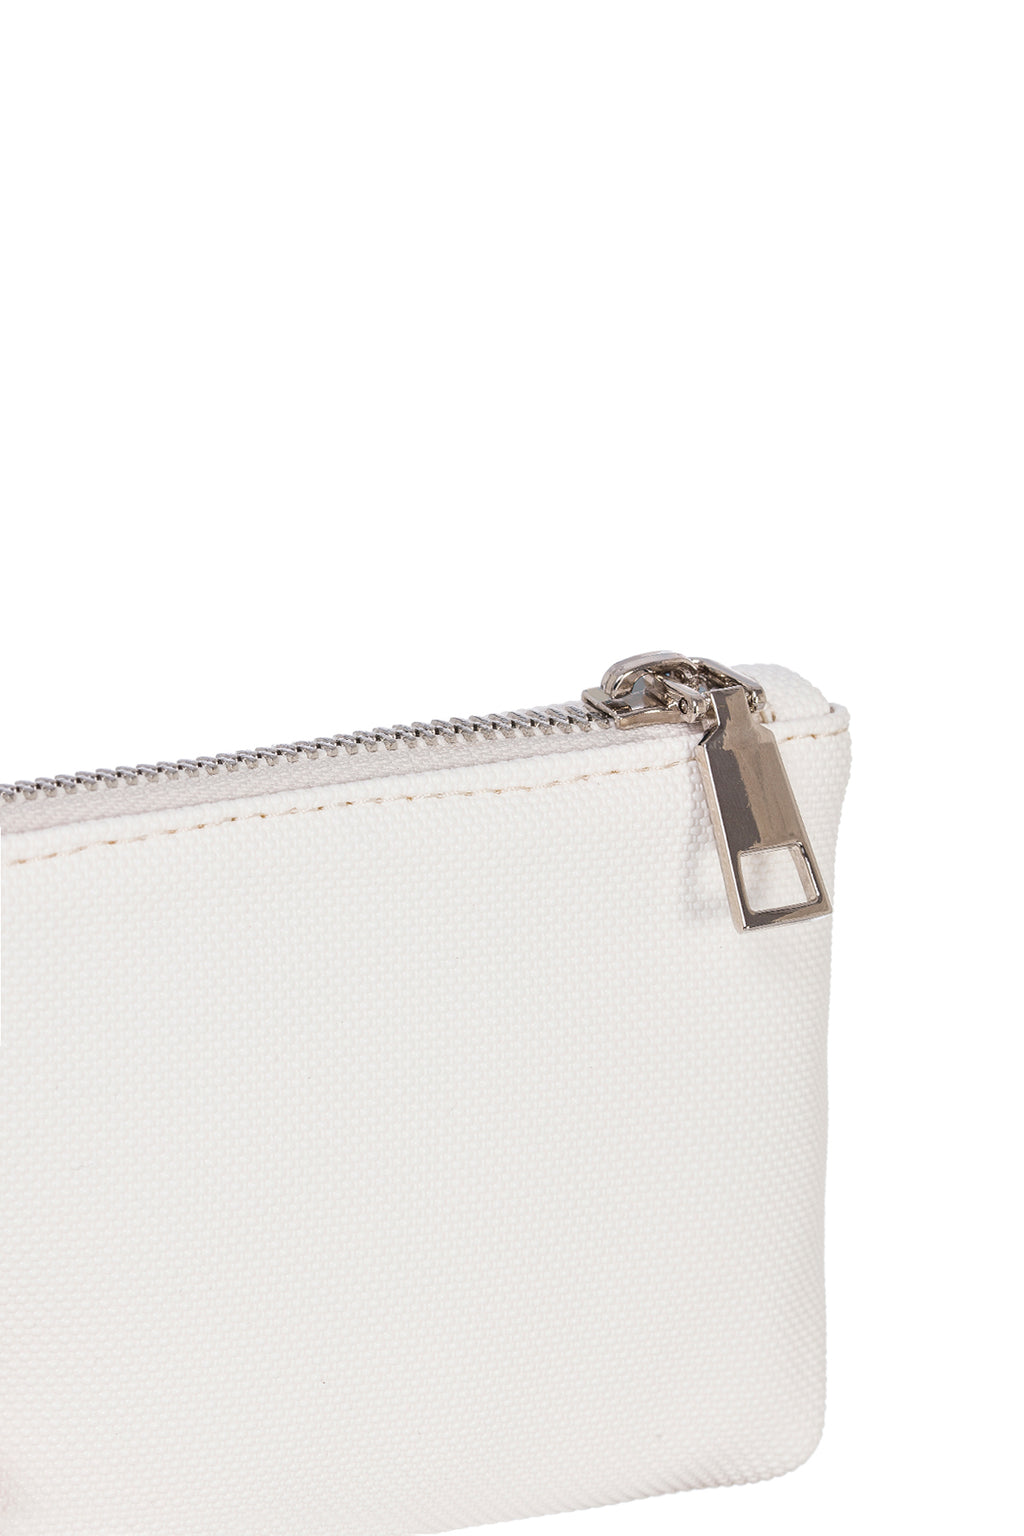 U-hide <br> Inner Pouch <br> Small - White Pearl